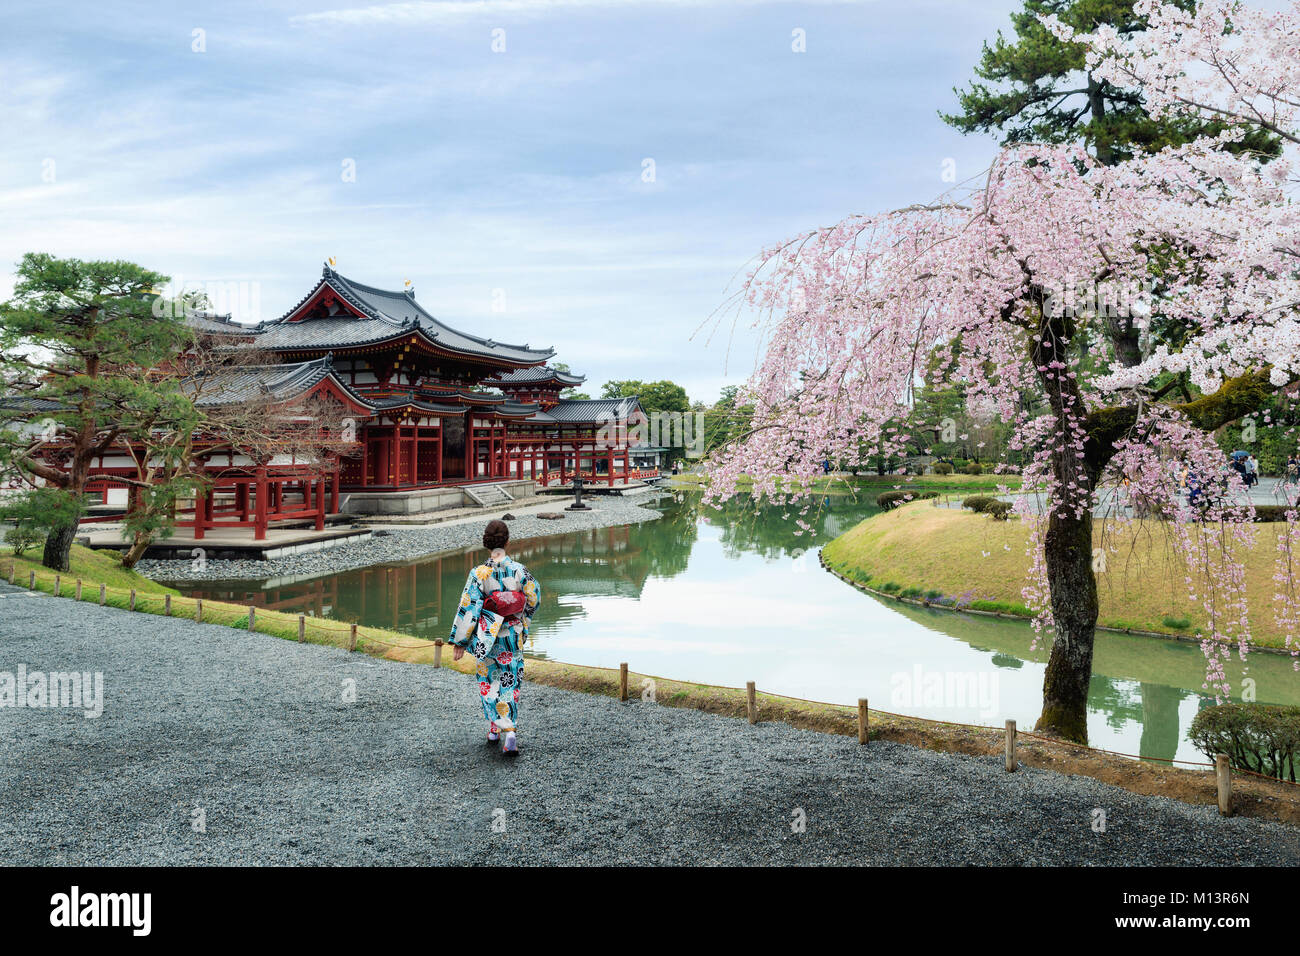 Asian women wearing traditional japanese kimono in Byodo-in Temple in Uji, Kyoto, Japan during spring. Cherry blossom - Stock Image